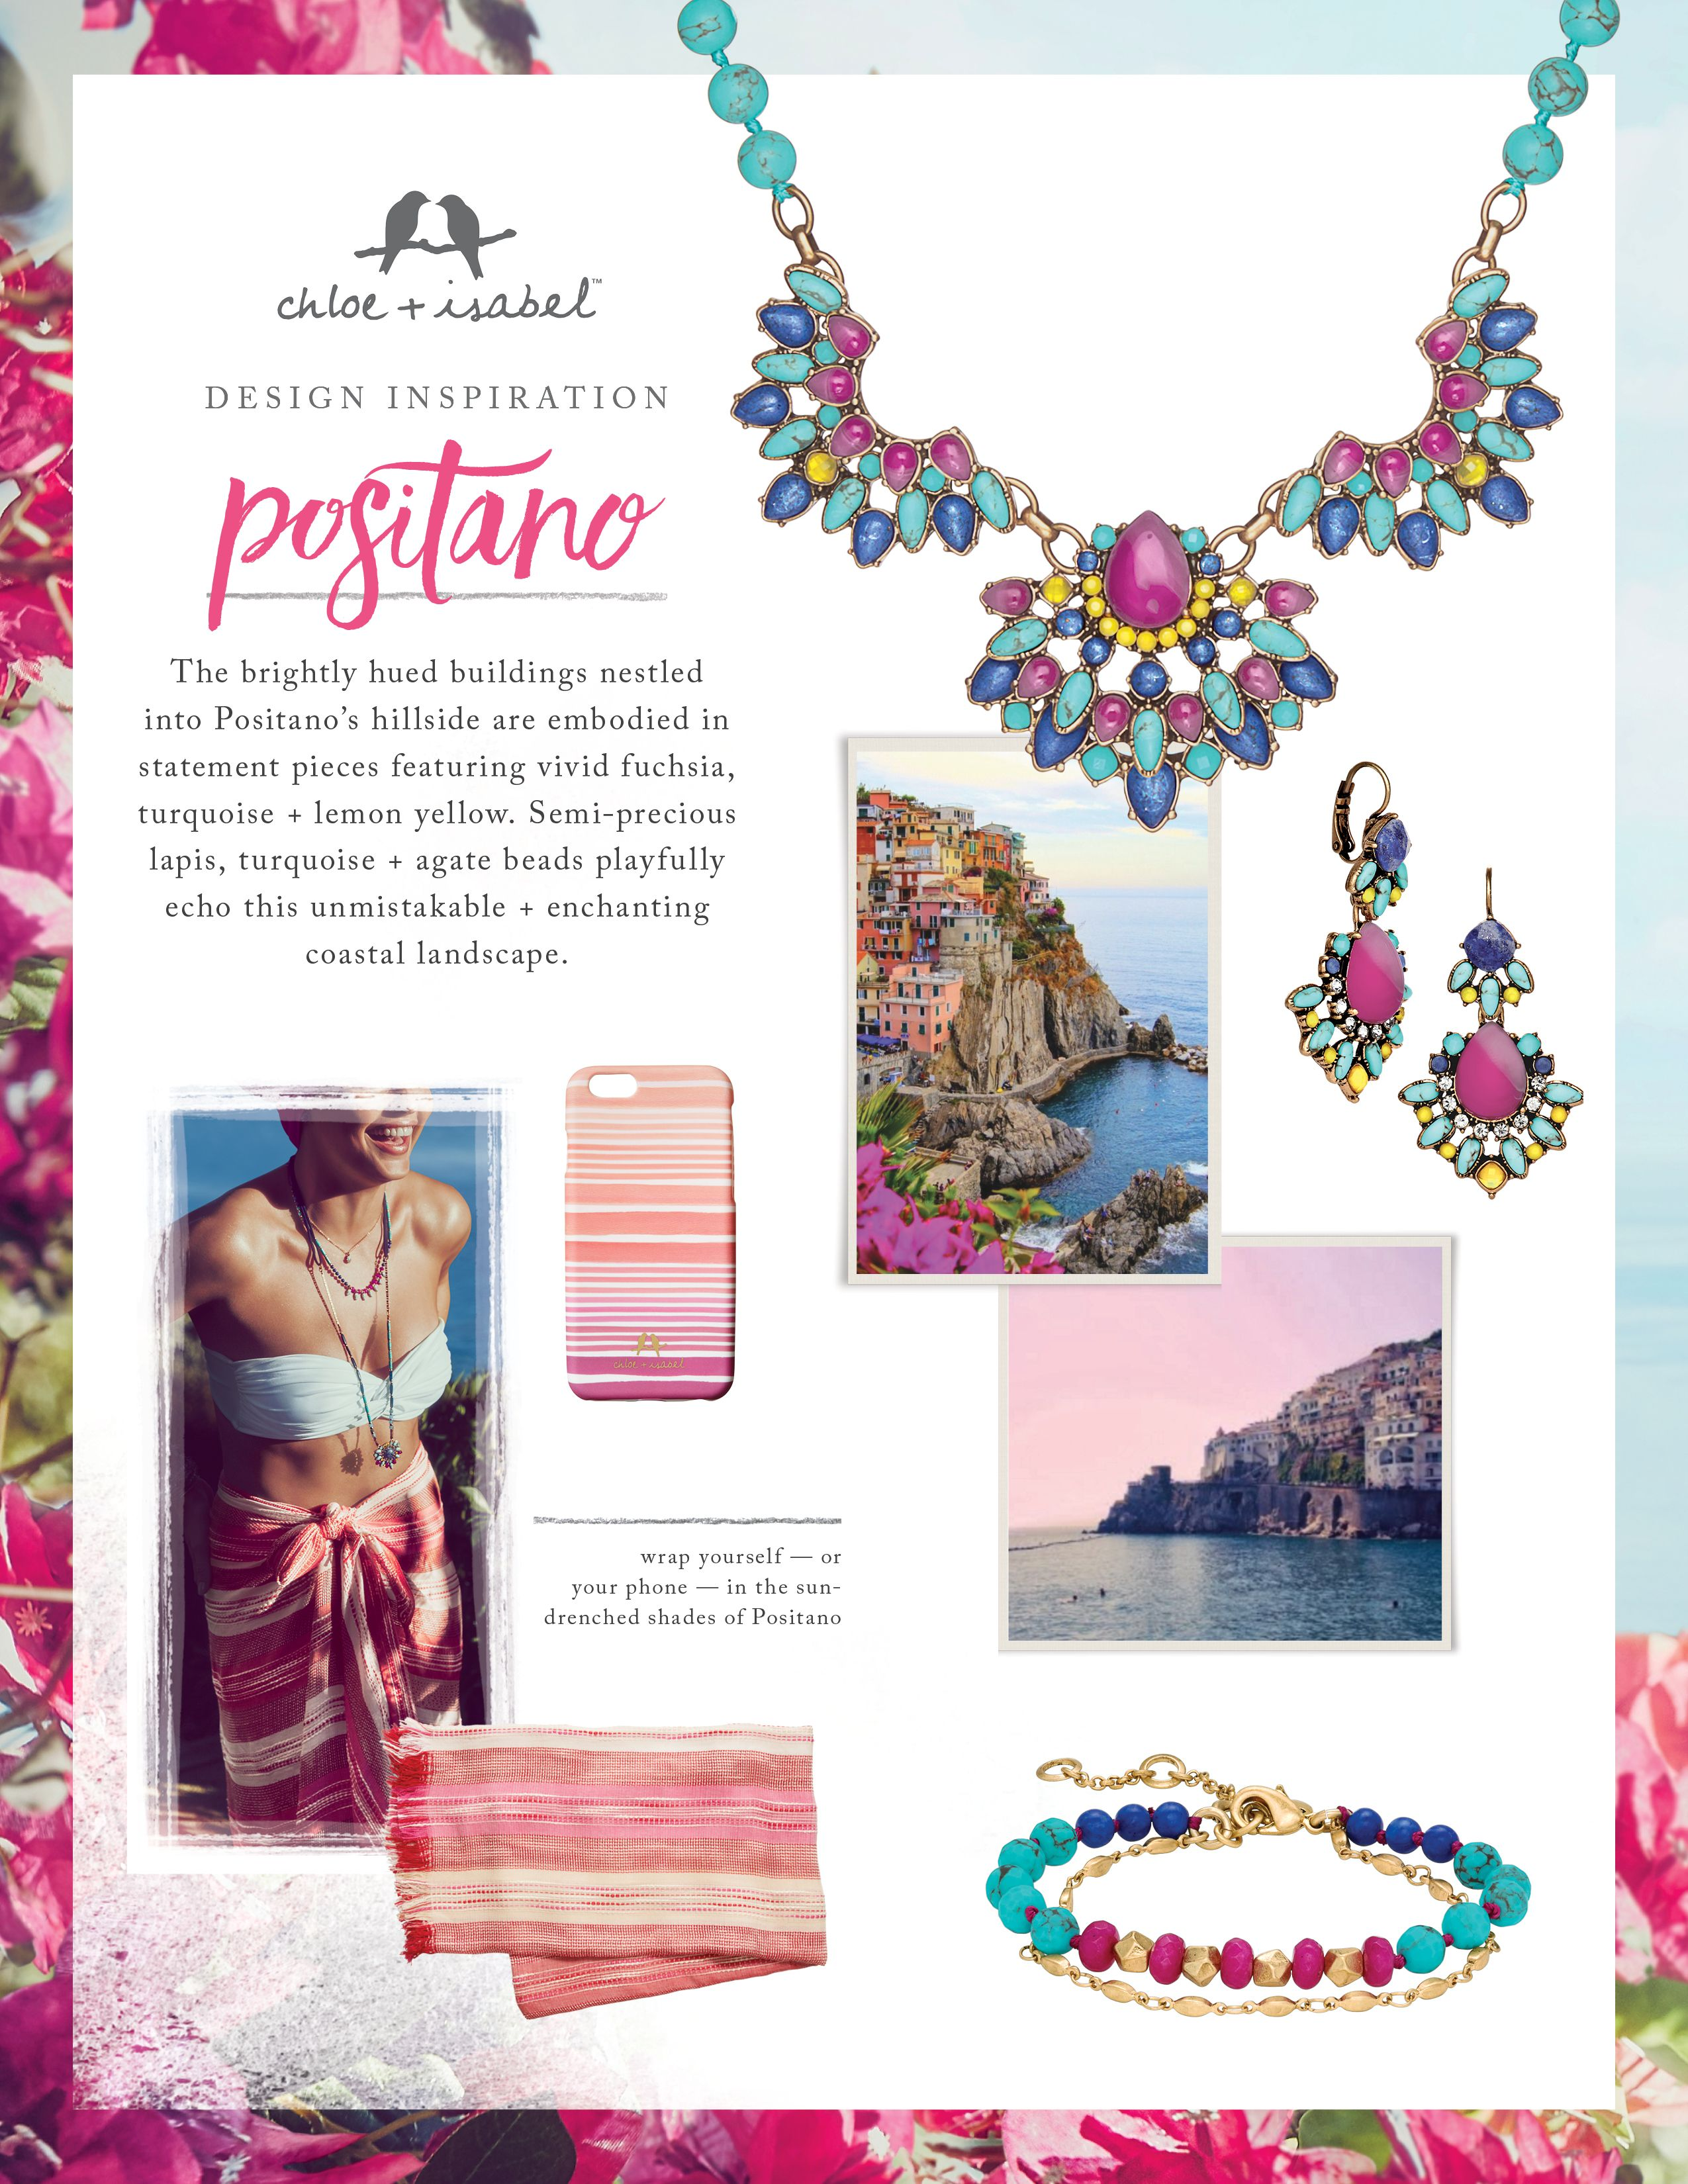 d4a09e2a4283 Discover the inspiration behind our Positano mini-collection, including  brand-new product categories!